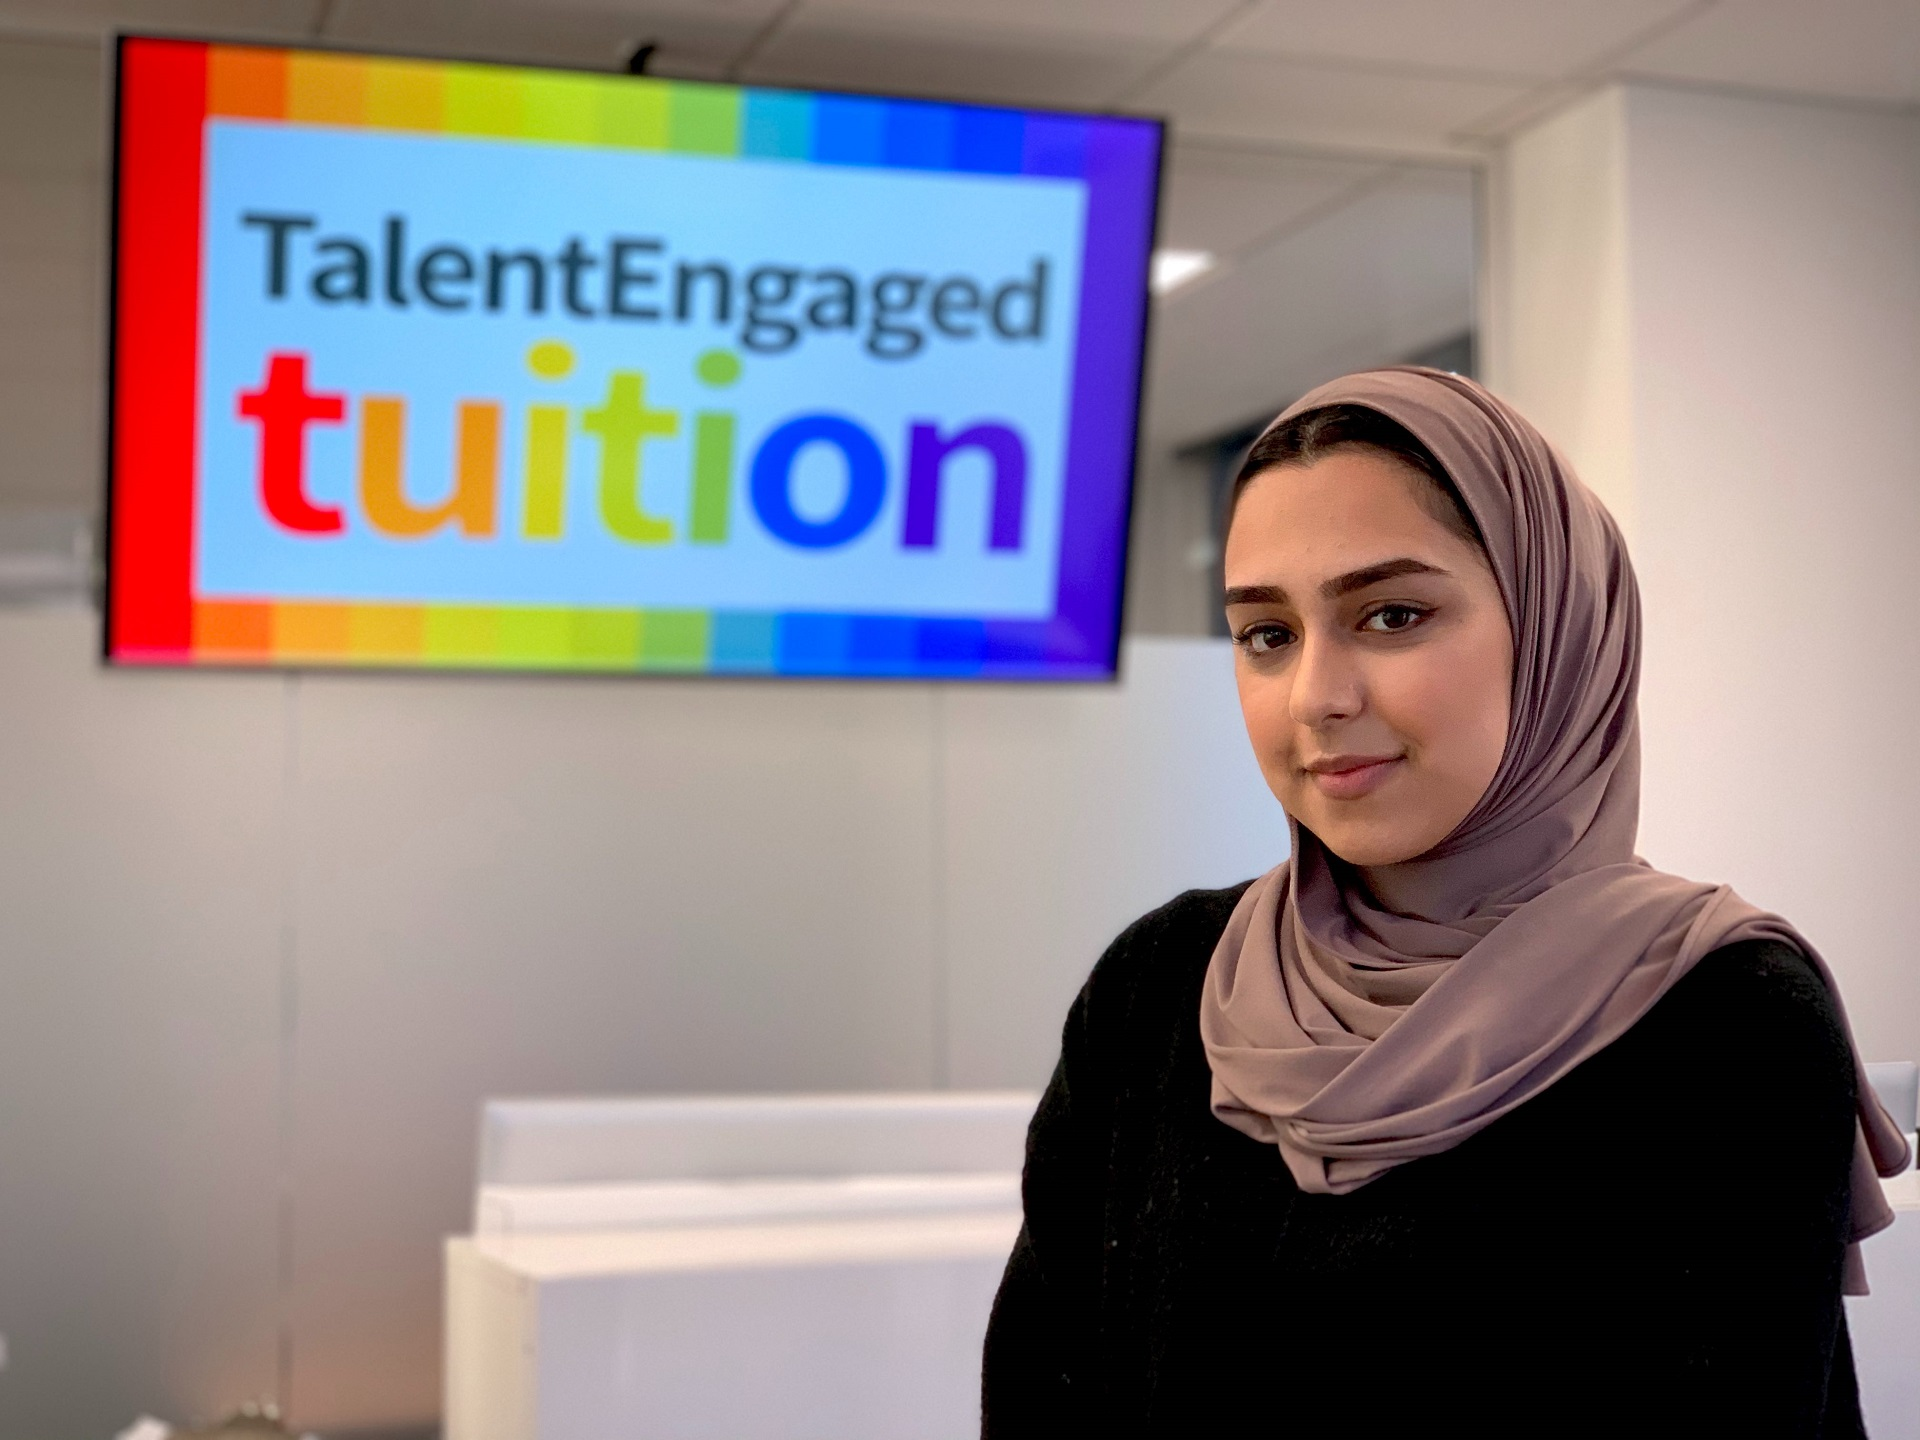 Lamba - Science Tutor - Talent Engaged Tuition